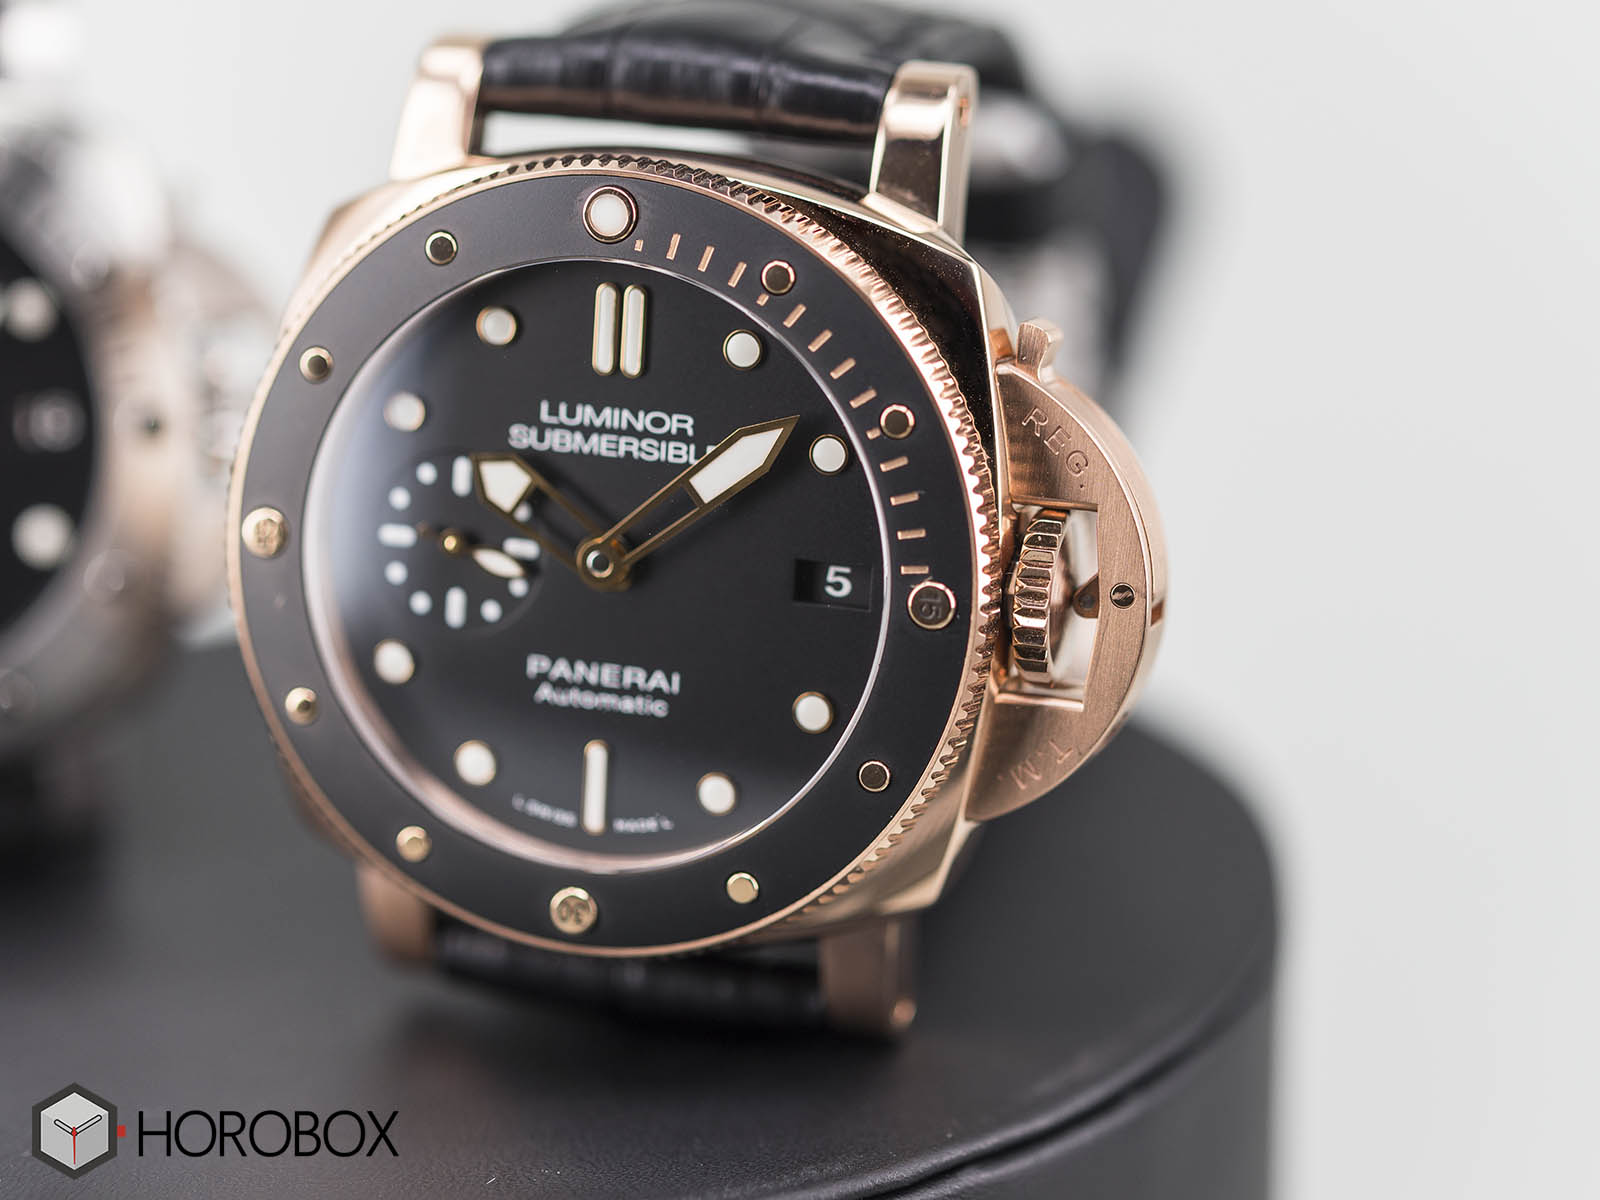 panerai-luminor-1950-submersible-pam00682-pam00684-4.jpg